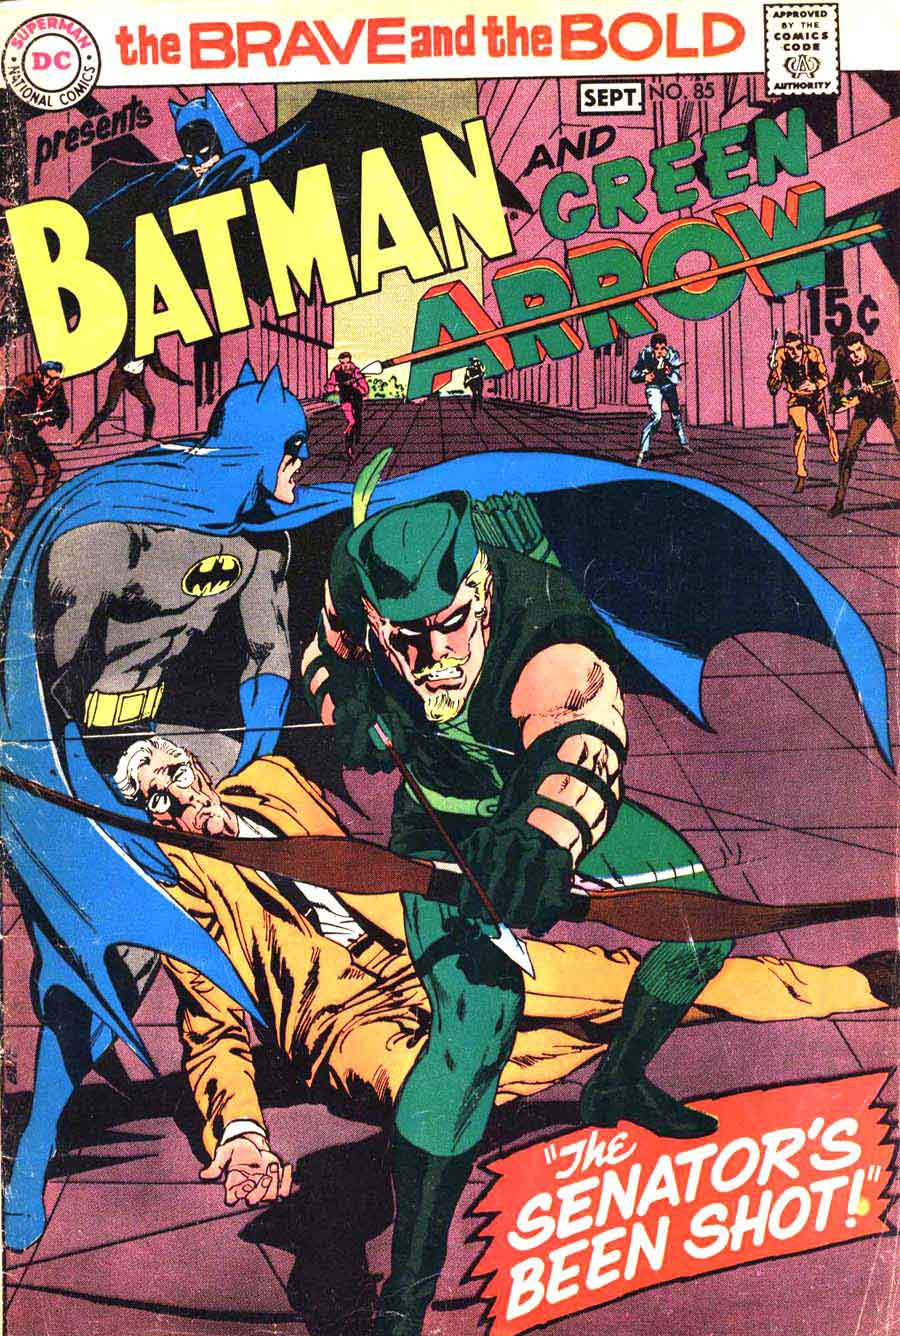 Brave and the Bold v1 #85 dc comic book cover art by Neal Adams